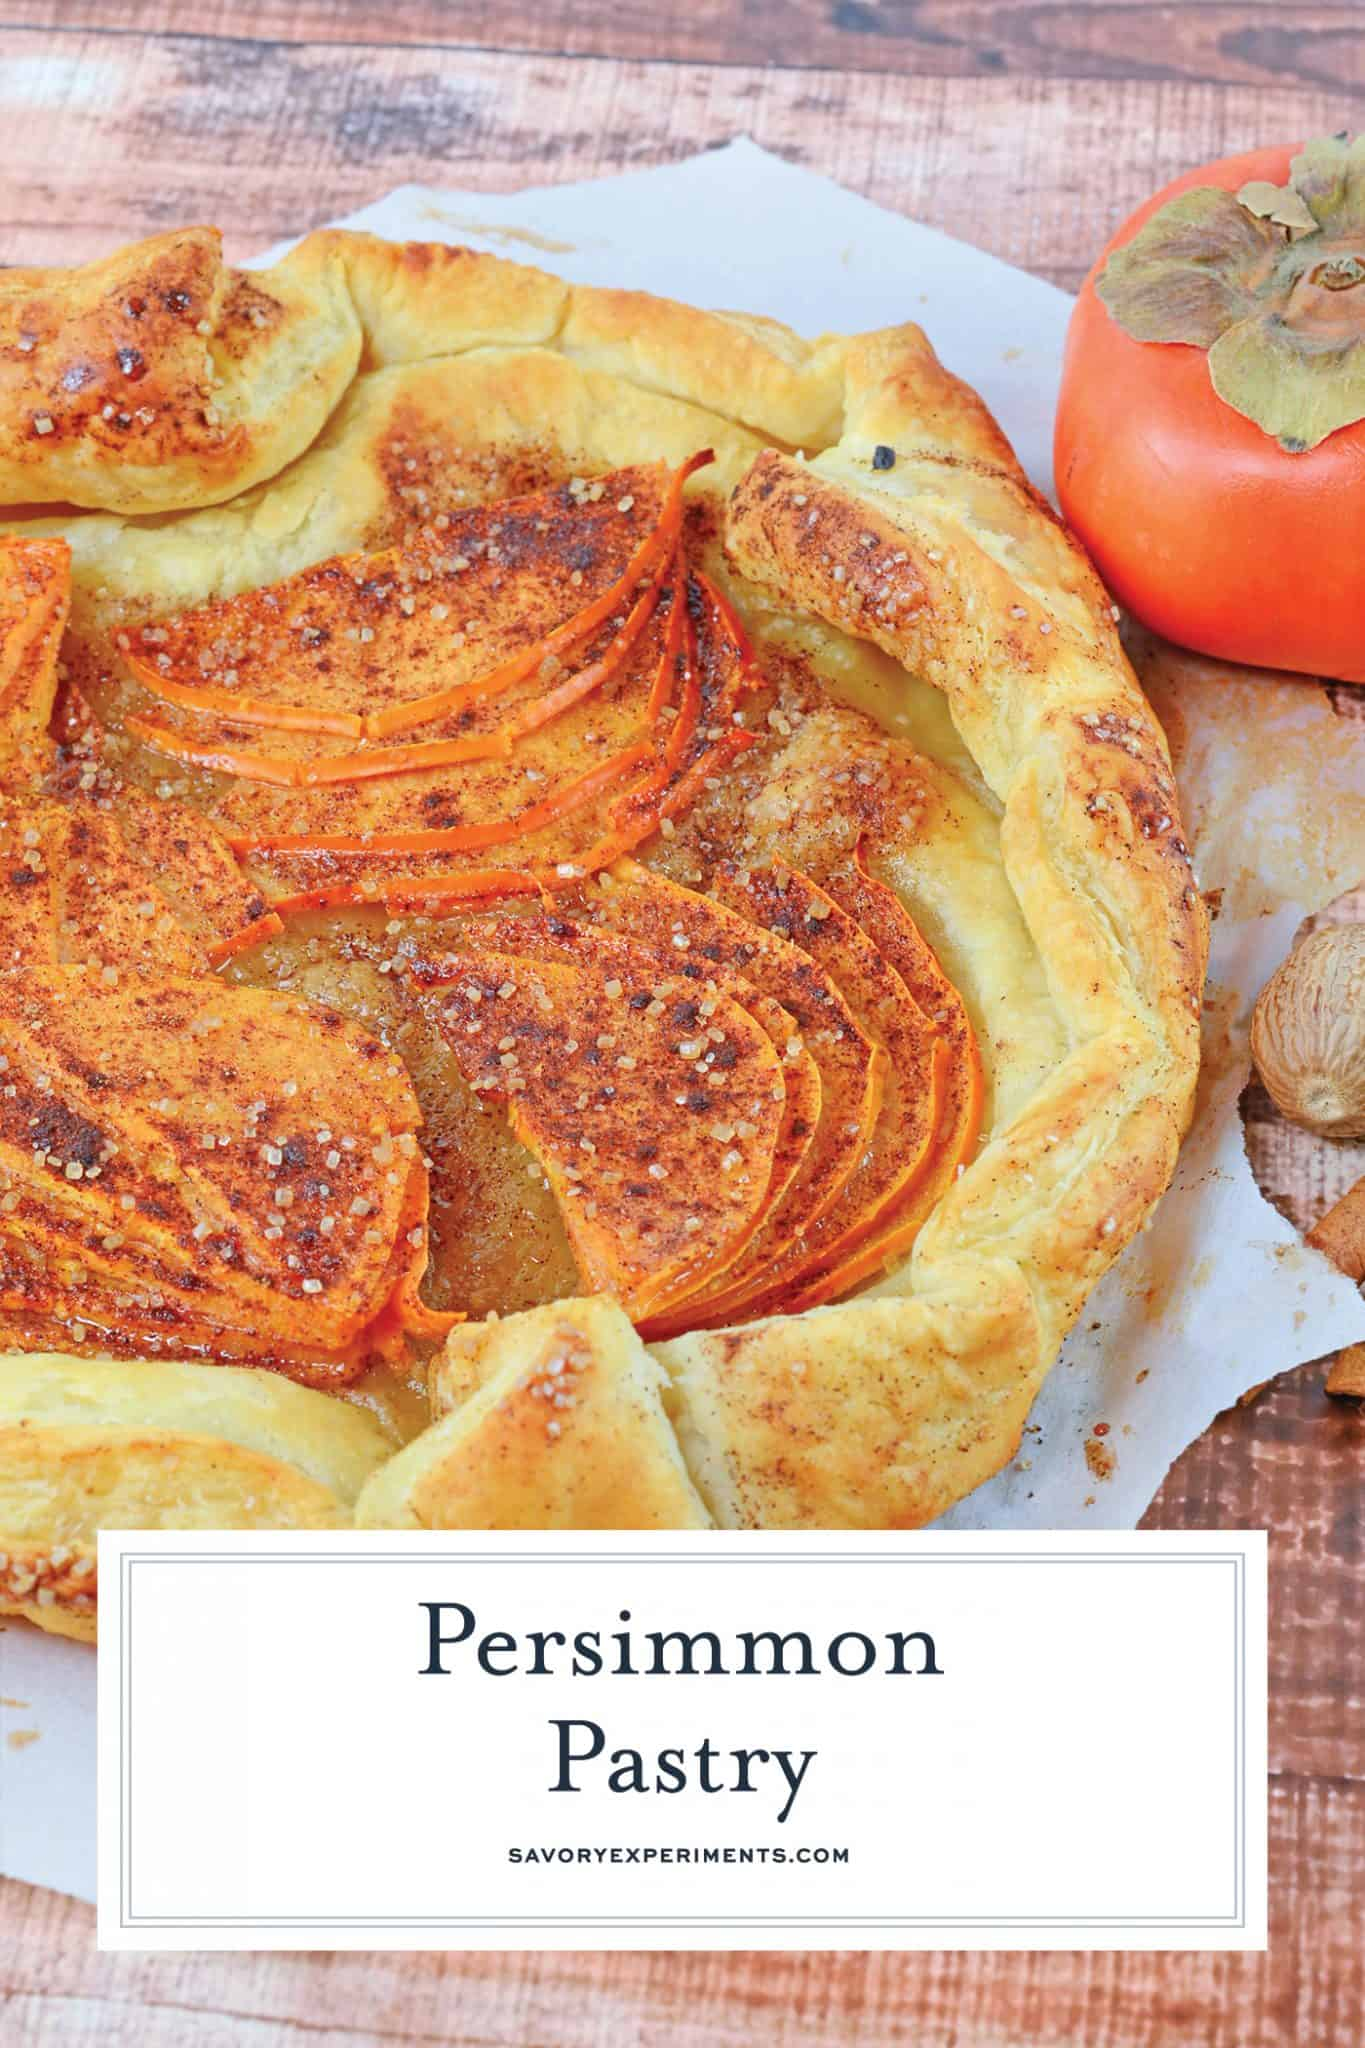 This Persimmon recipe is a delicious twist on the typical pastries you're used to! A Persimmon Pastry is an easy dessert or breakfast recipe! #tartrecipes #persimmonrecipes www.savoryexperiments.com